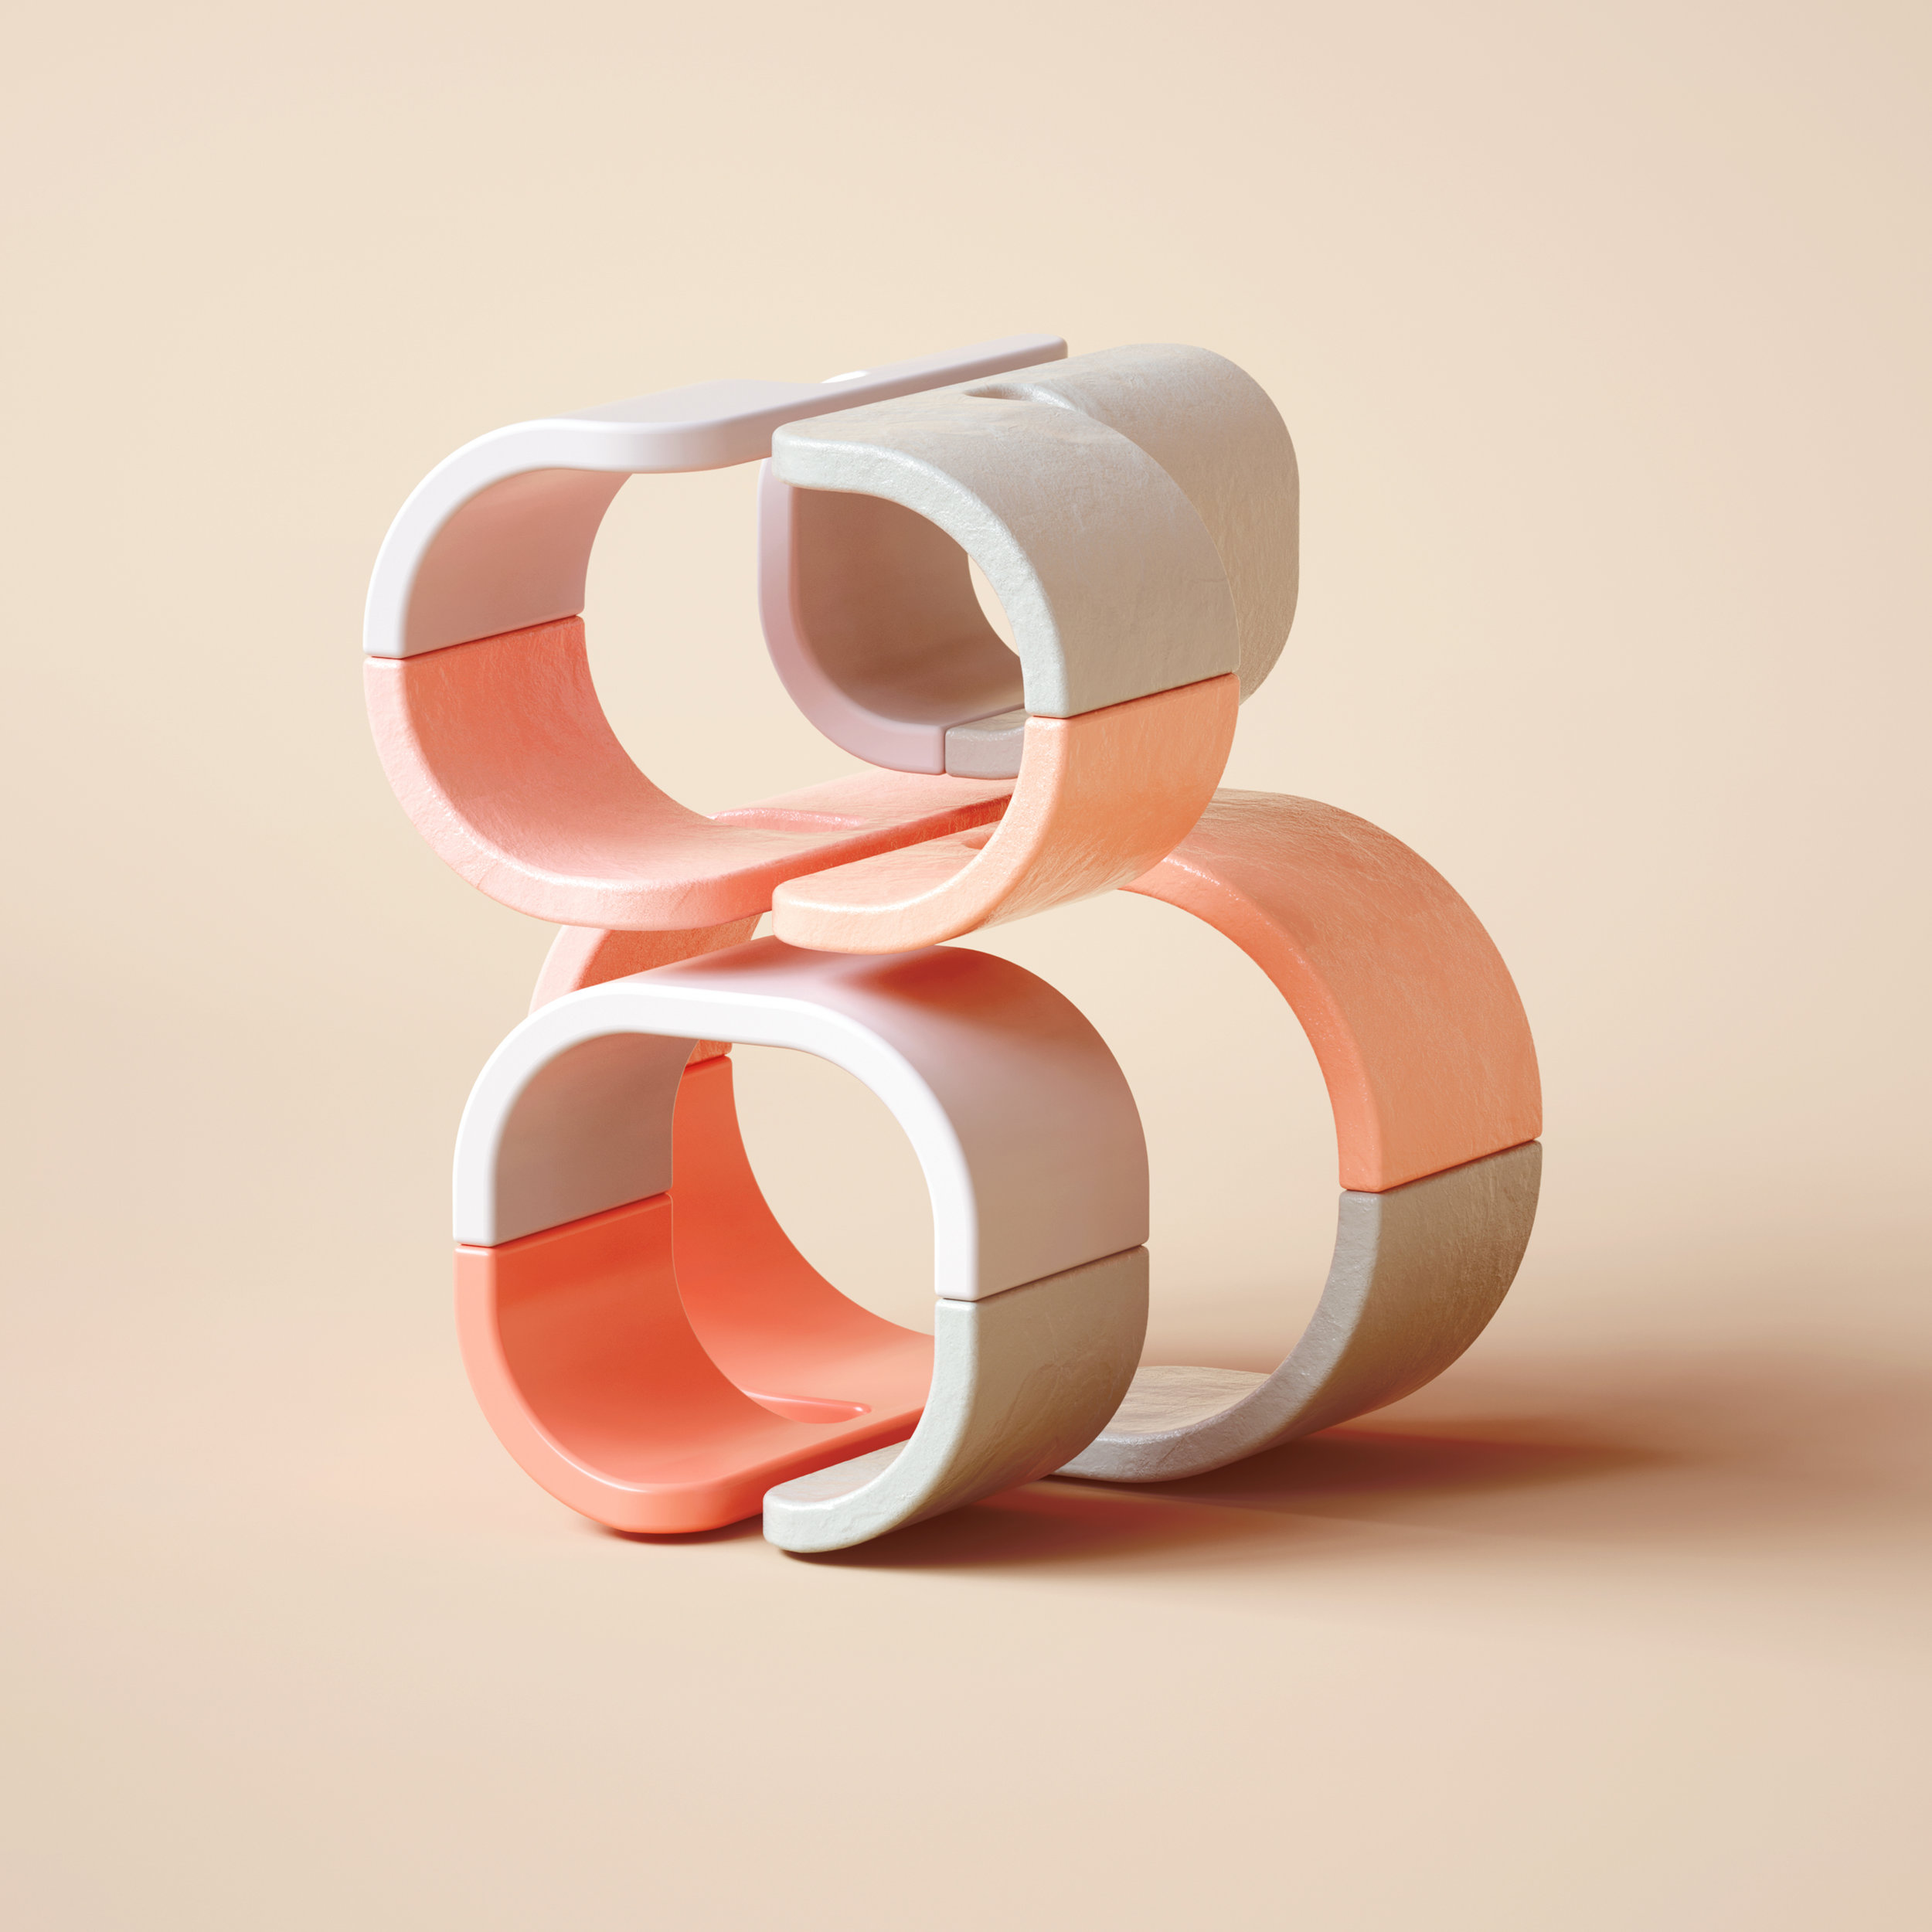 36 Days of Type 2019 - 3D Typeform number 8 visual.